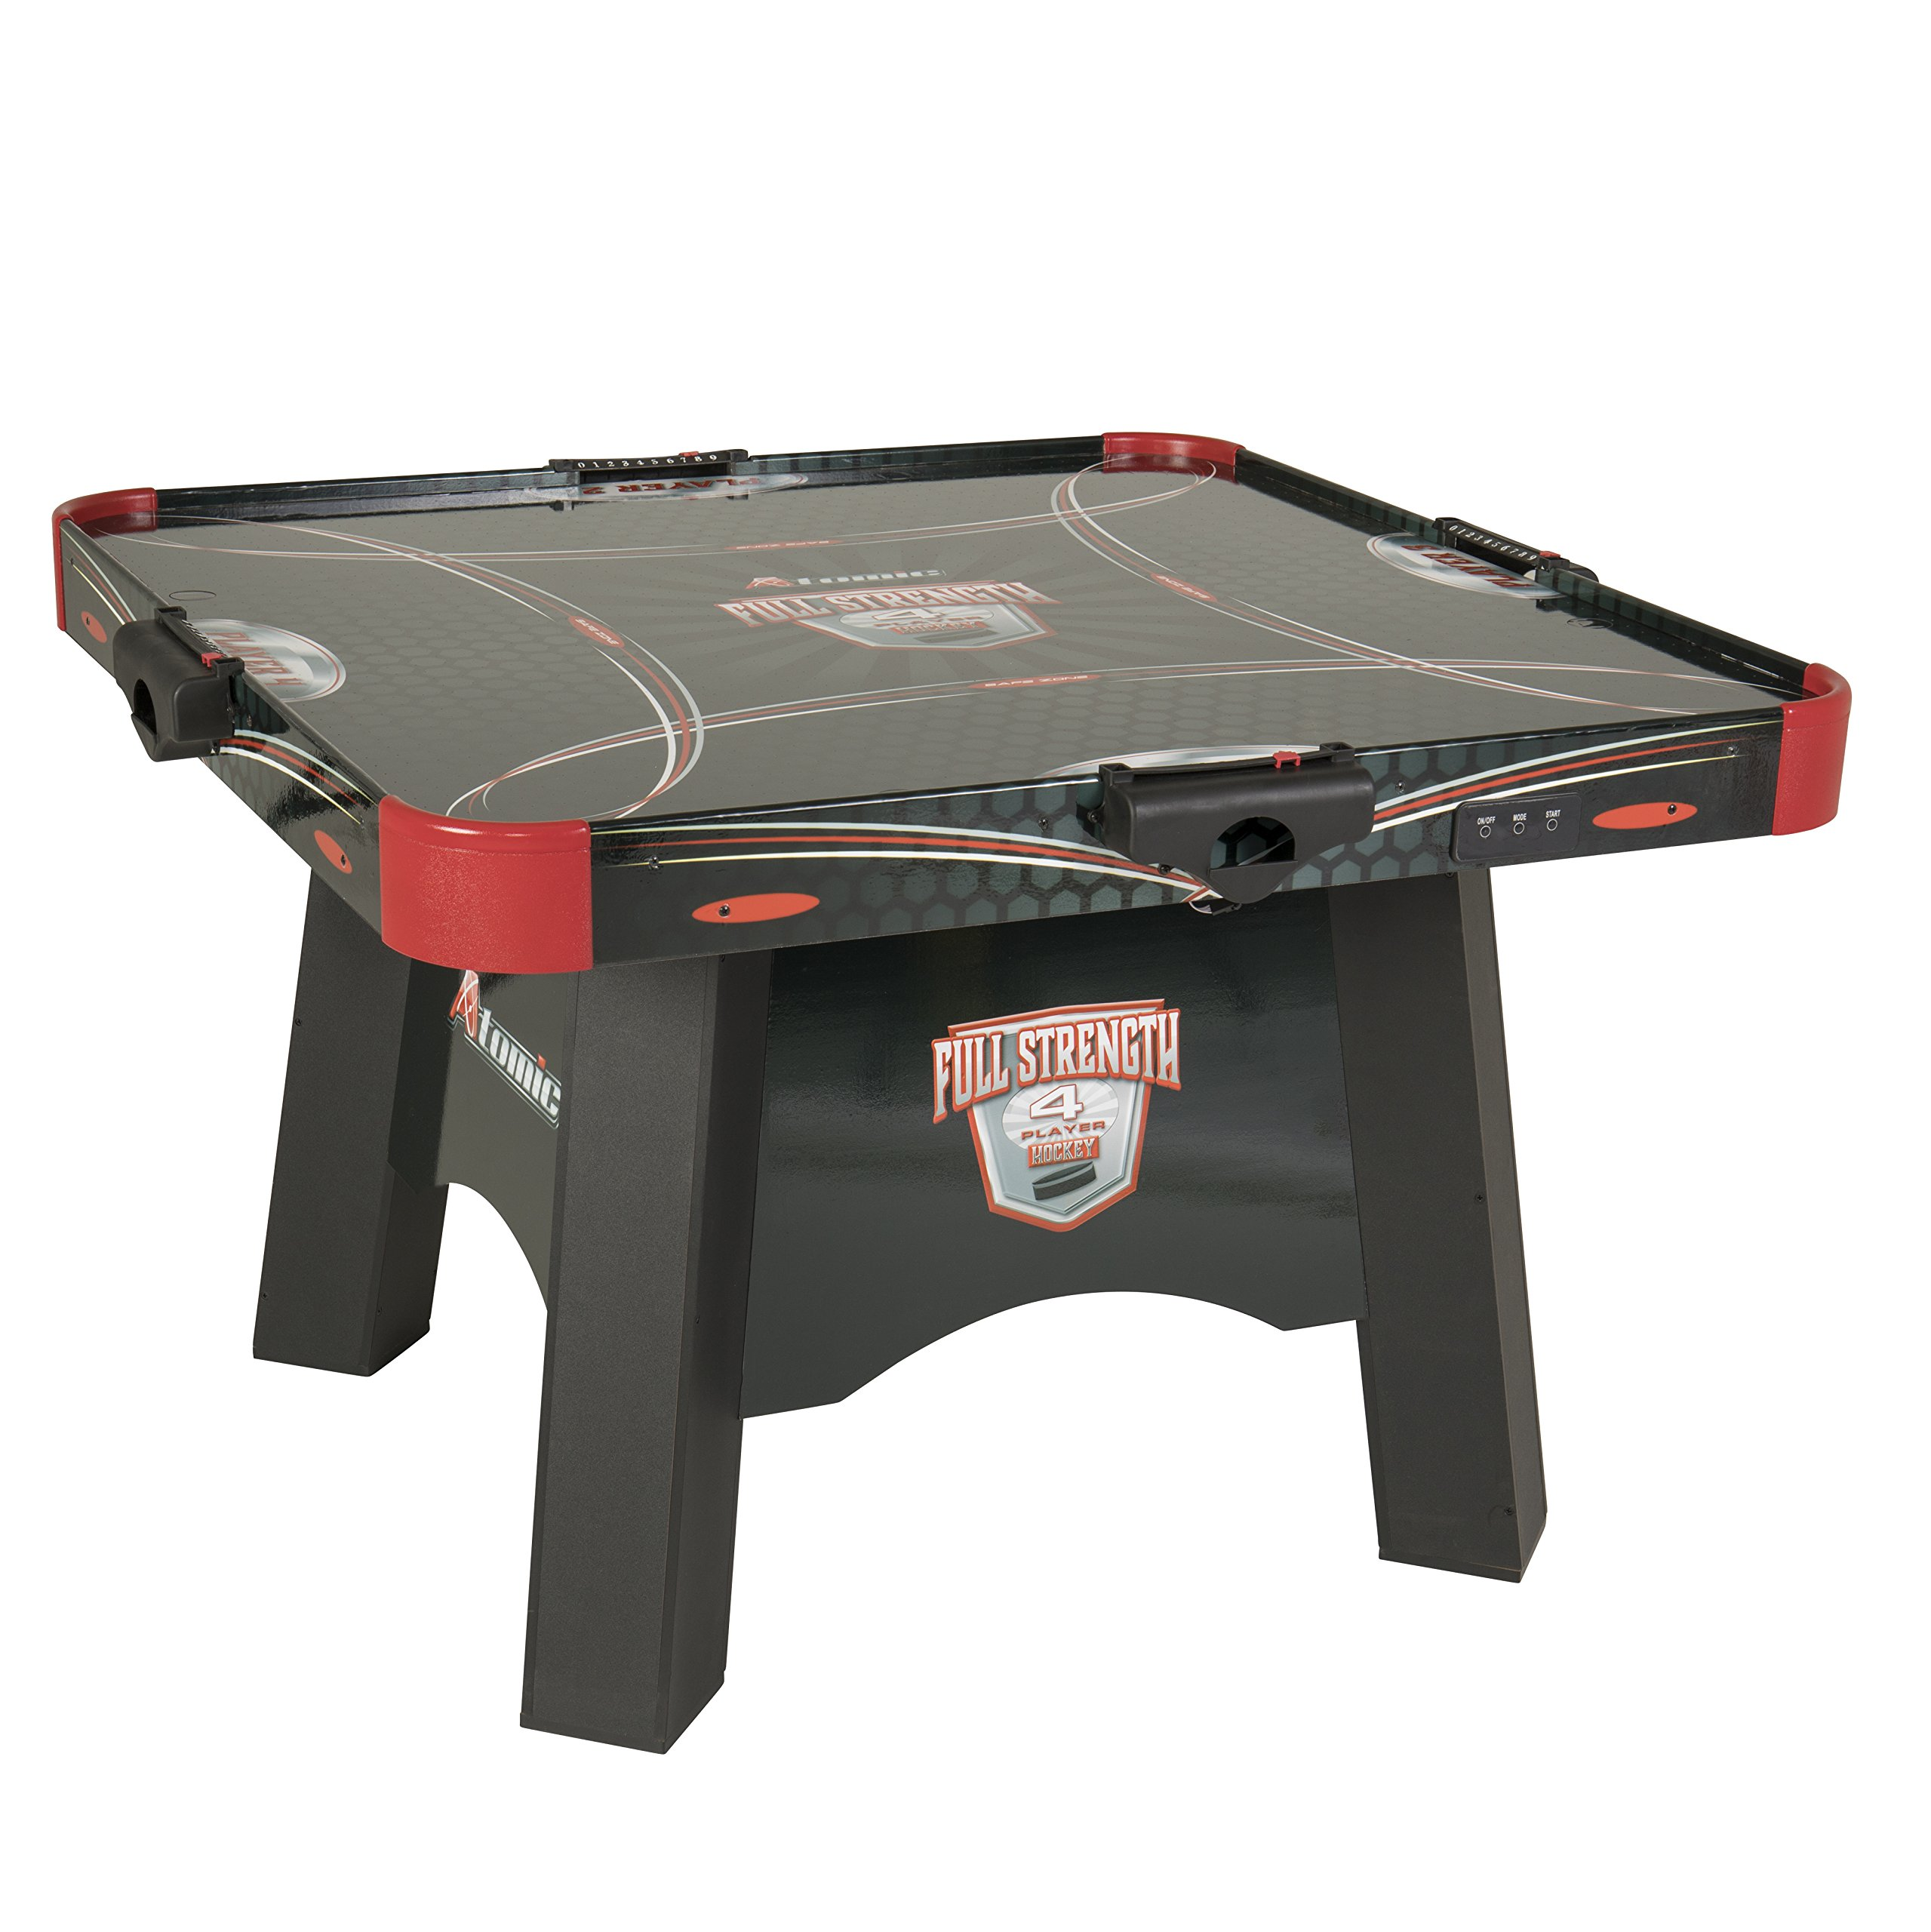 Atomic Full Strength 4-Player Air Powered Hockey Table with LED LIGHT UP Pucks and Pushers